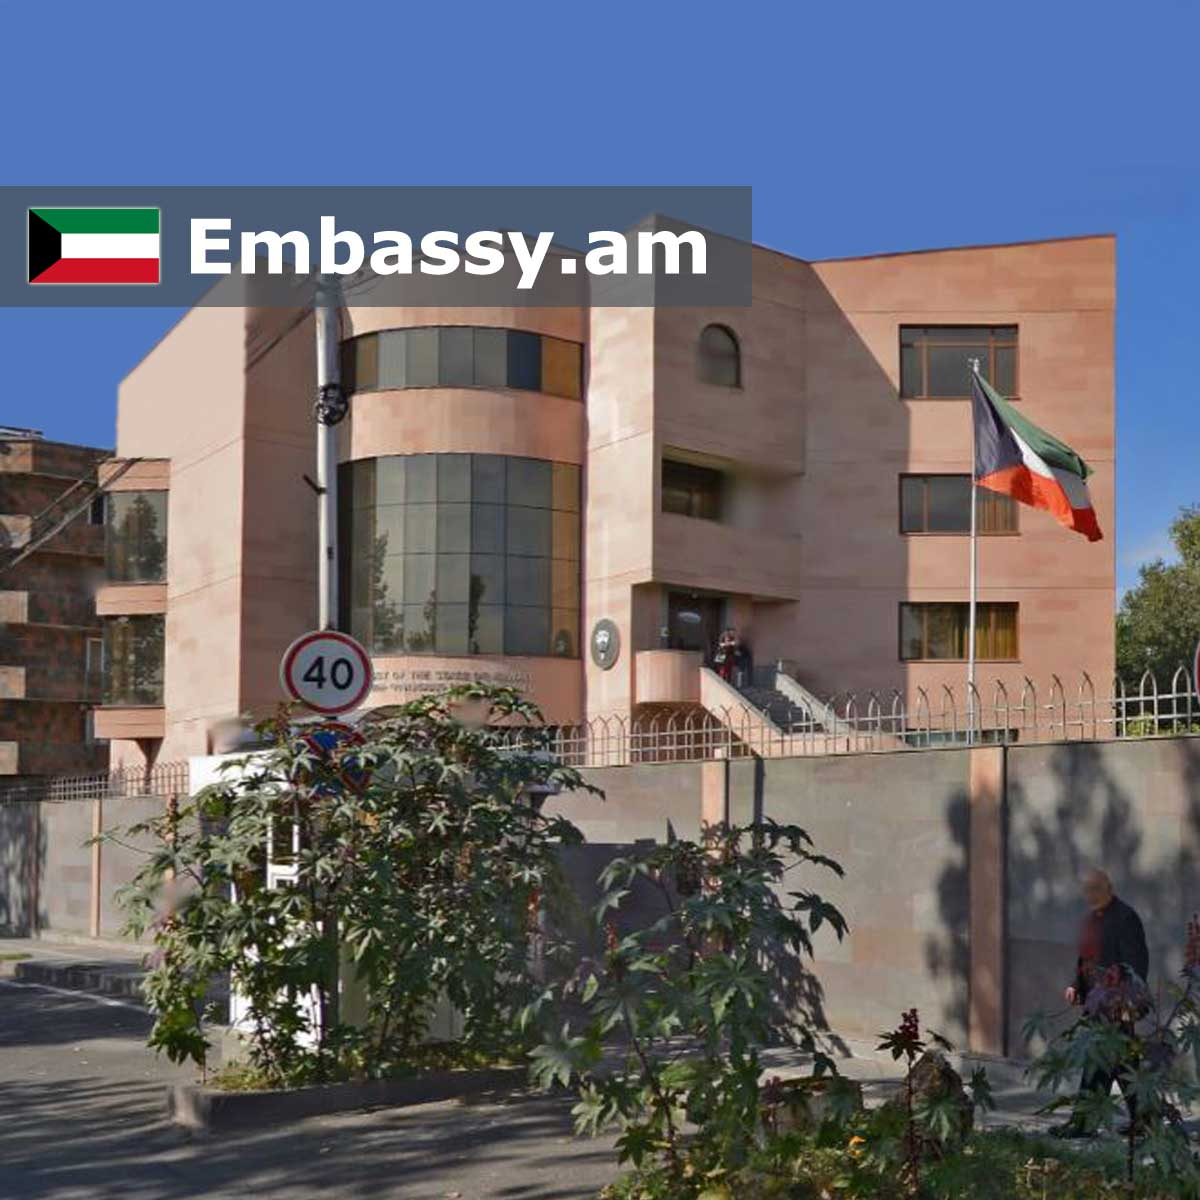 Embassy of the State of Kuwait in Armenia - Embassy.am